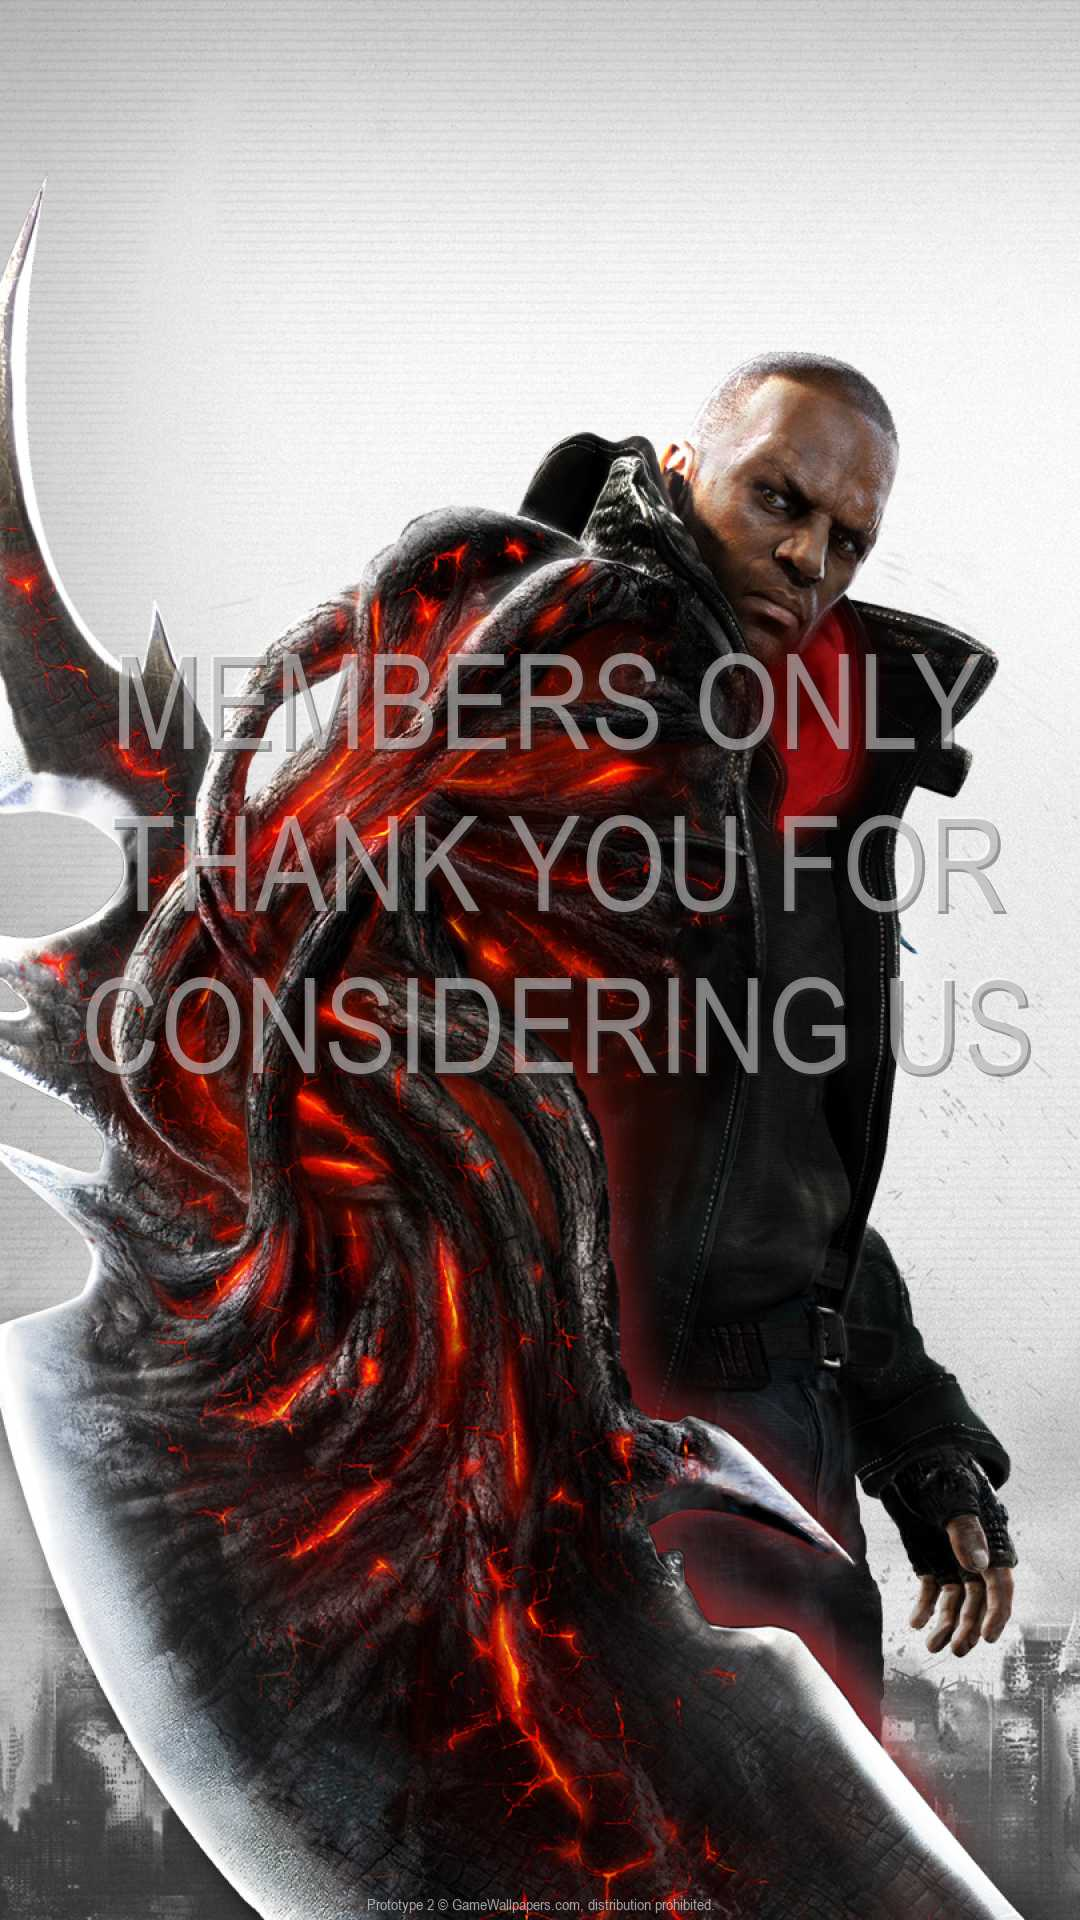 Prototype 2 1080p Vertical Mobile wallpaper or background 05